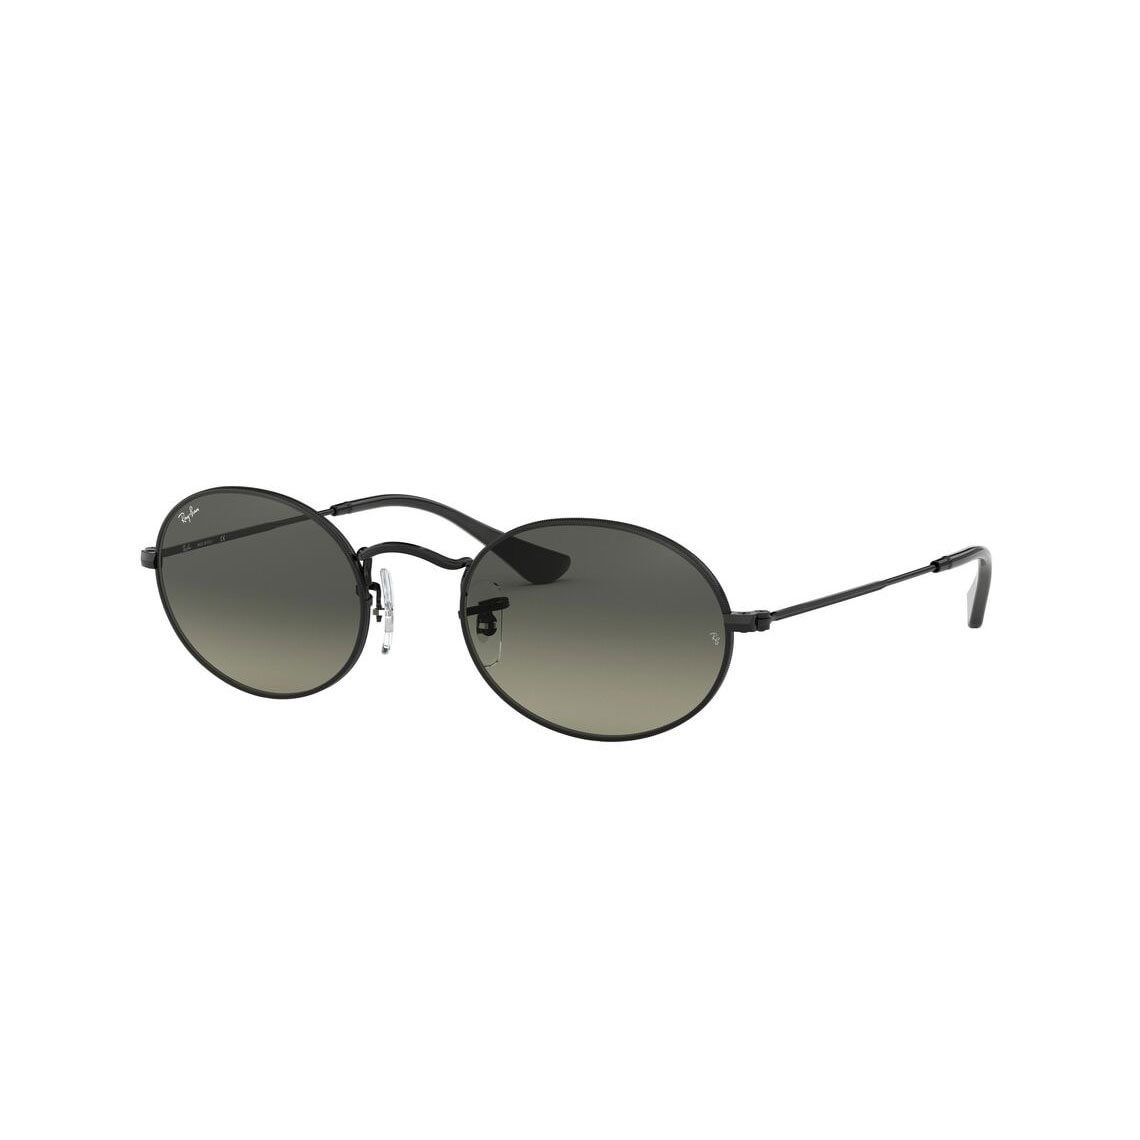 Ray-Ban Oval flat lenses RB3547N 002/71 54